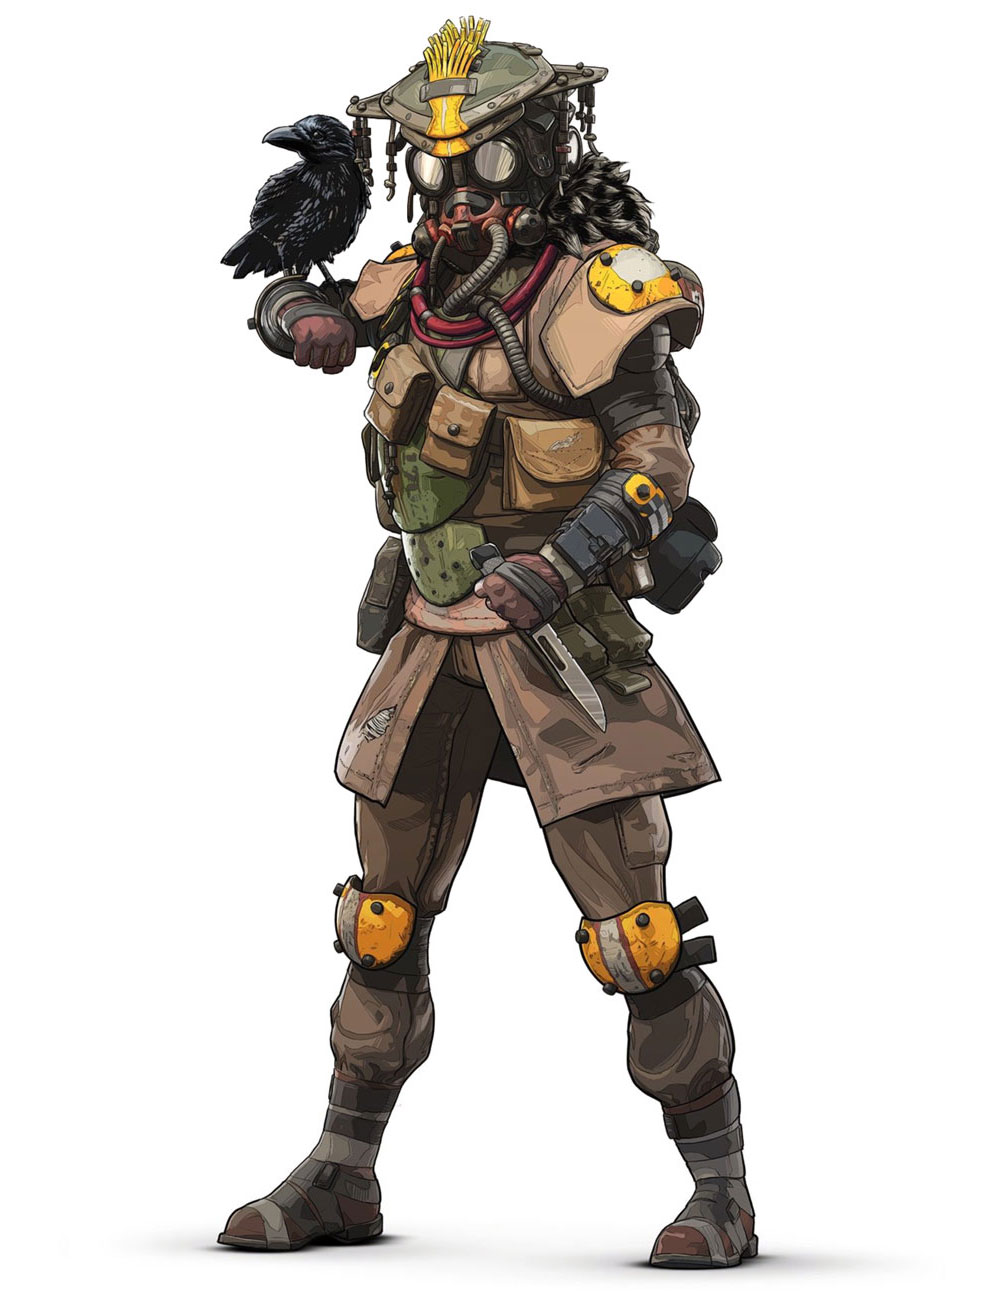 Концепт-арт Lifeline Apex Legends (10).jpg